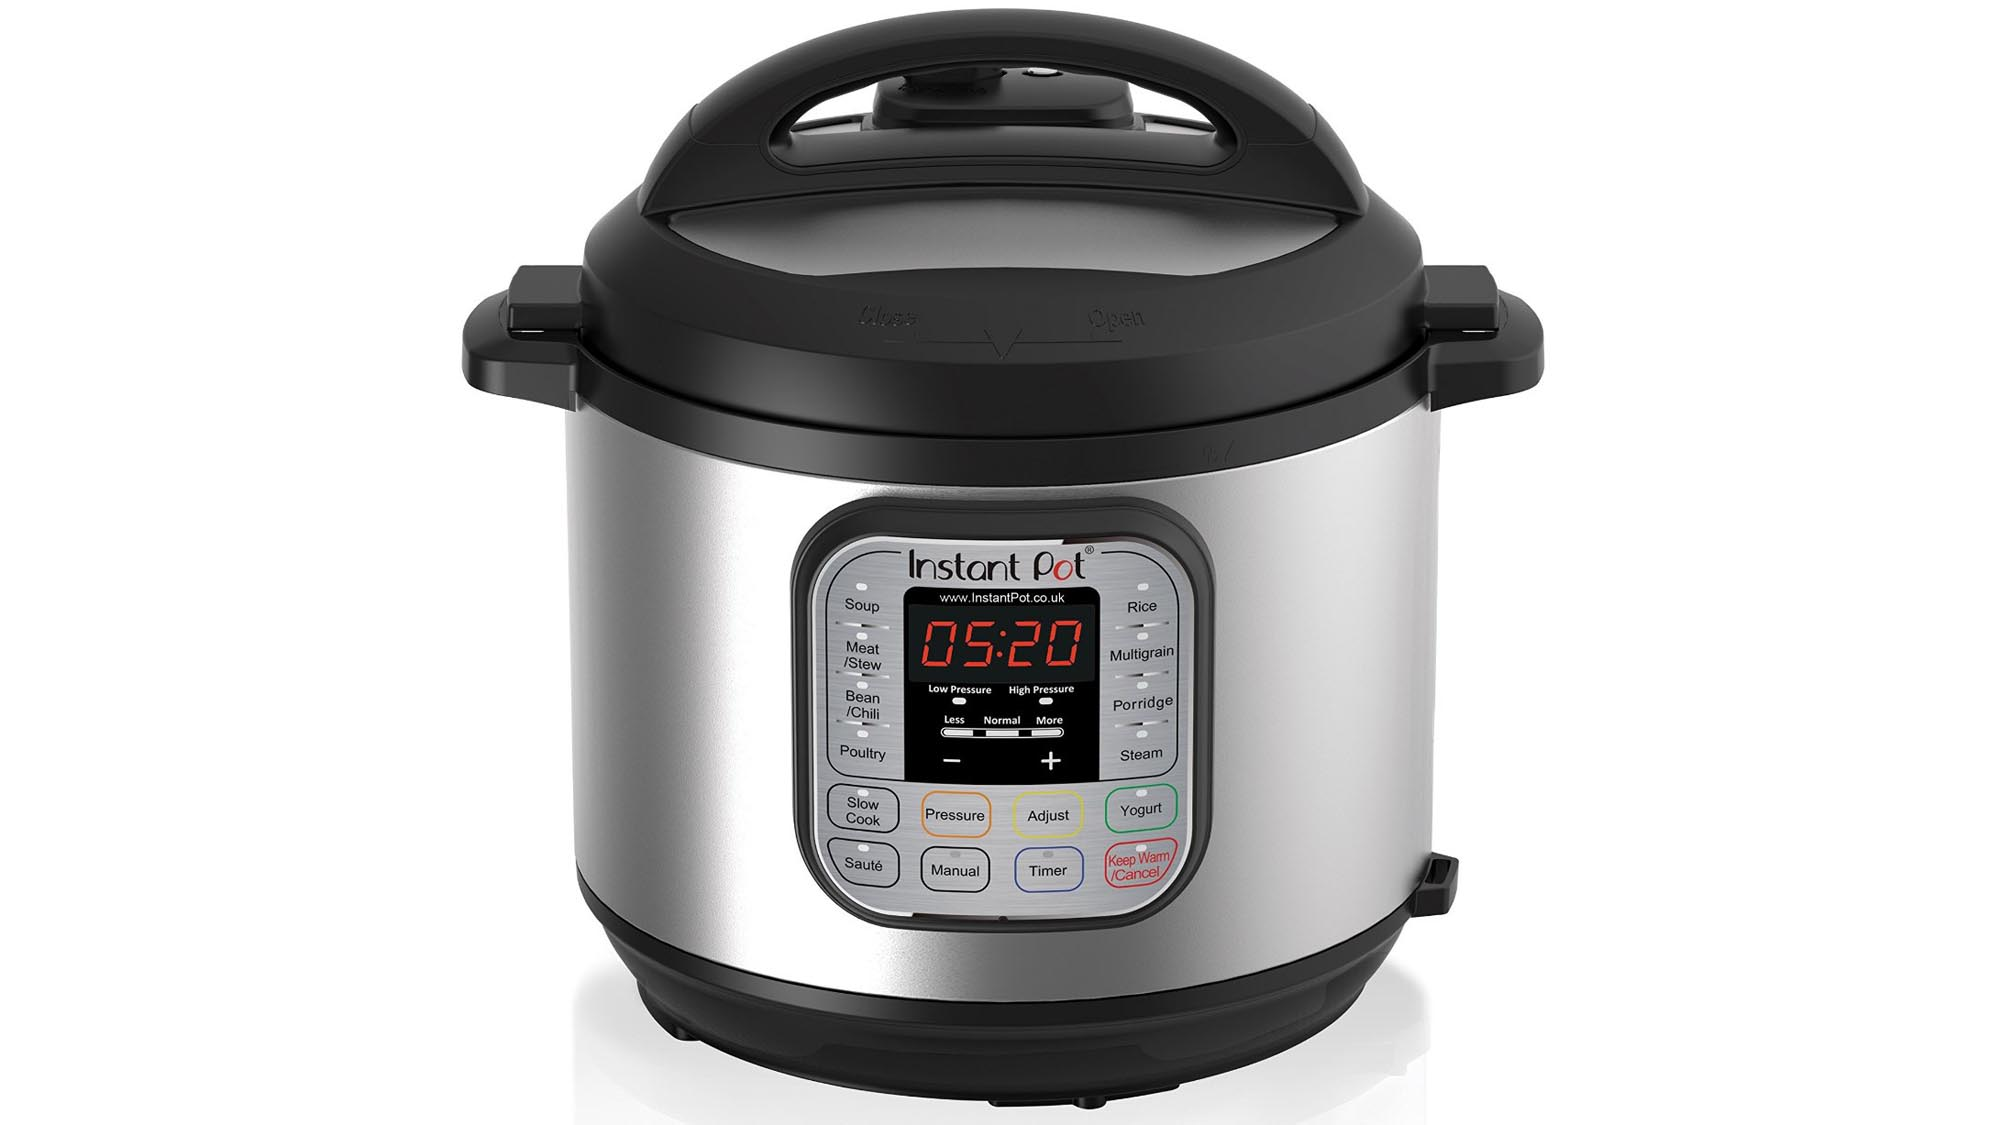 Best Pressure Cooker 2018 The Best Pressure Cookers From